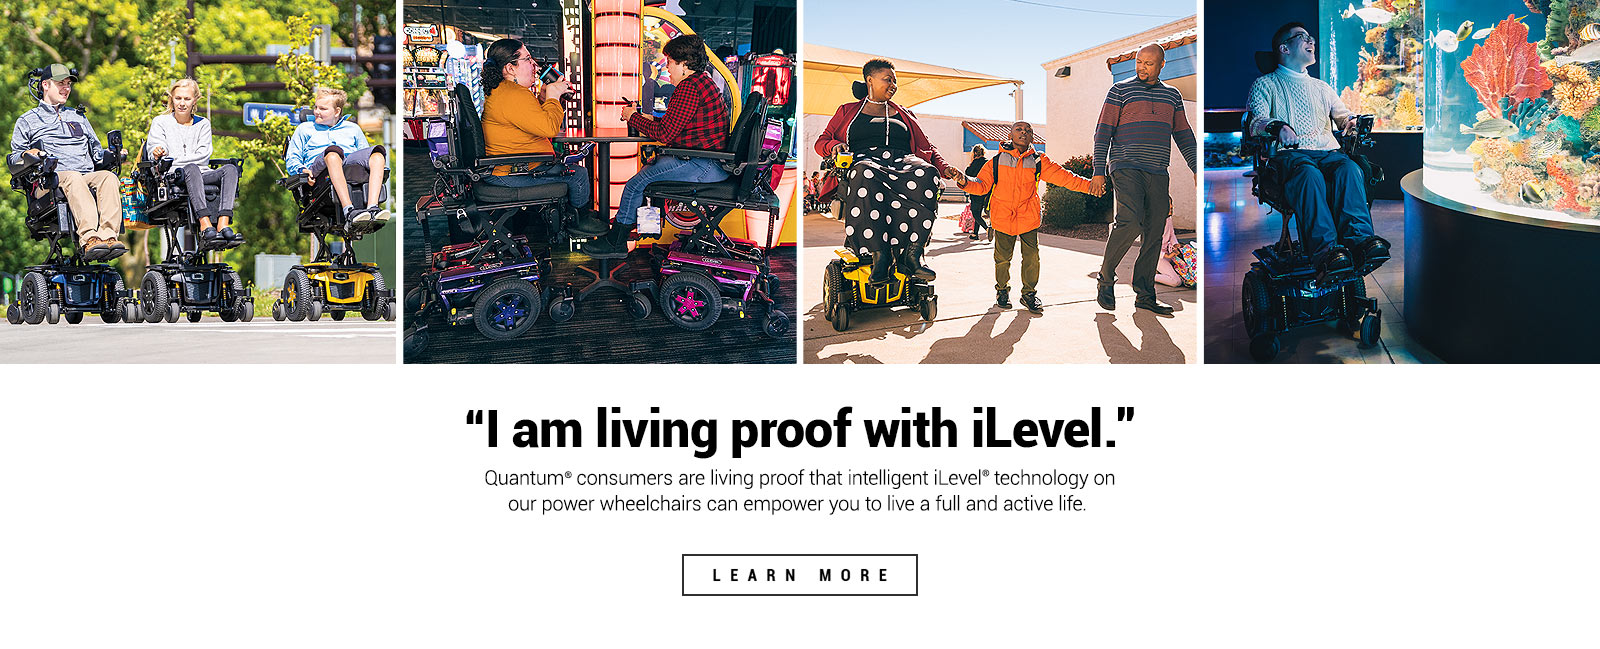 I am living proof with iLevel.